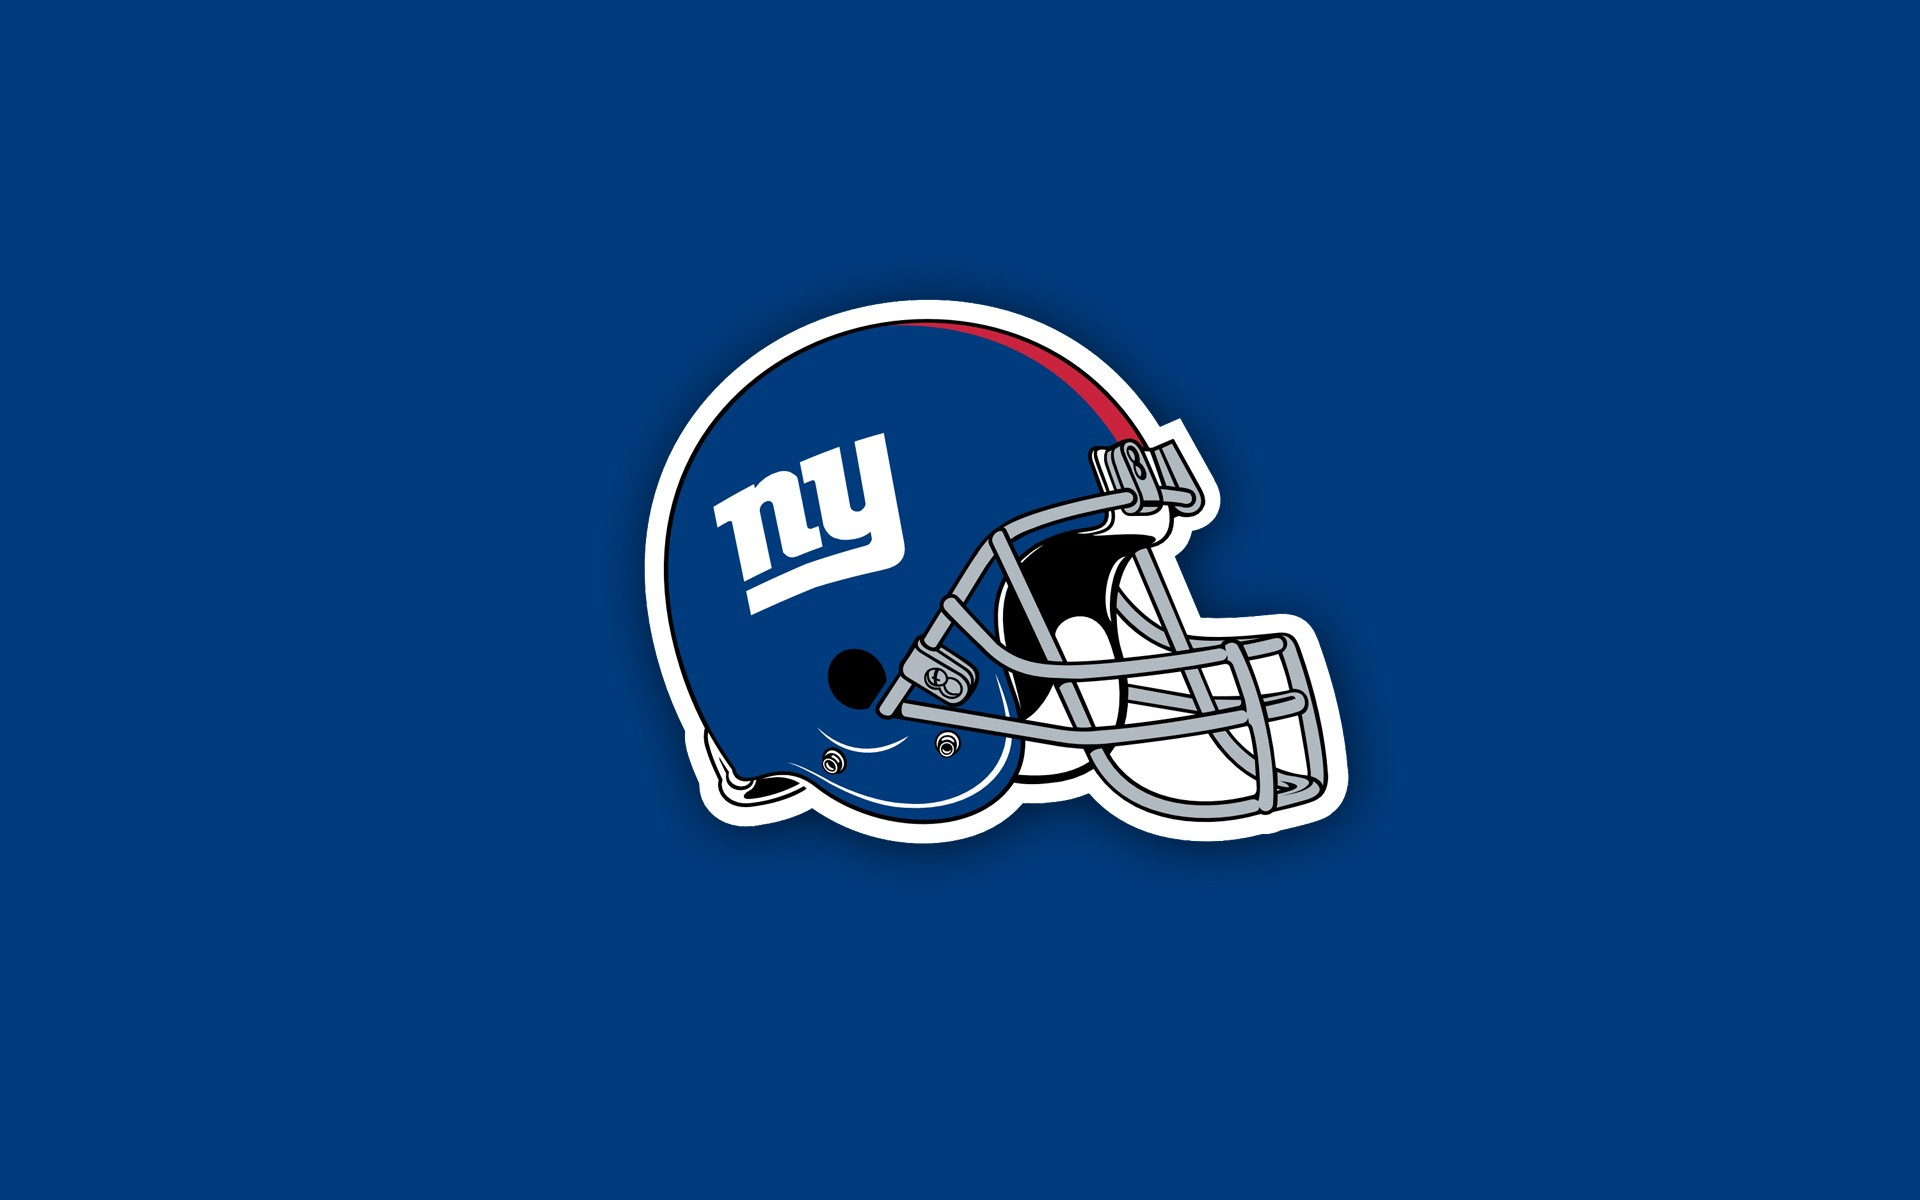 New York Giants Wallpaper Download Free Beautiful Wallpapers